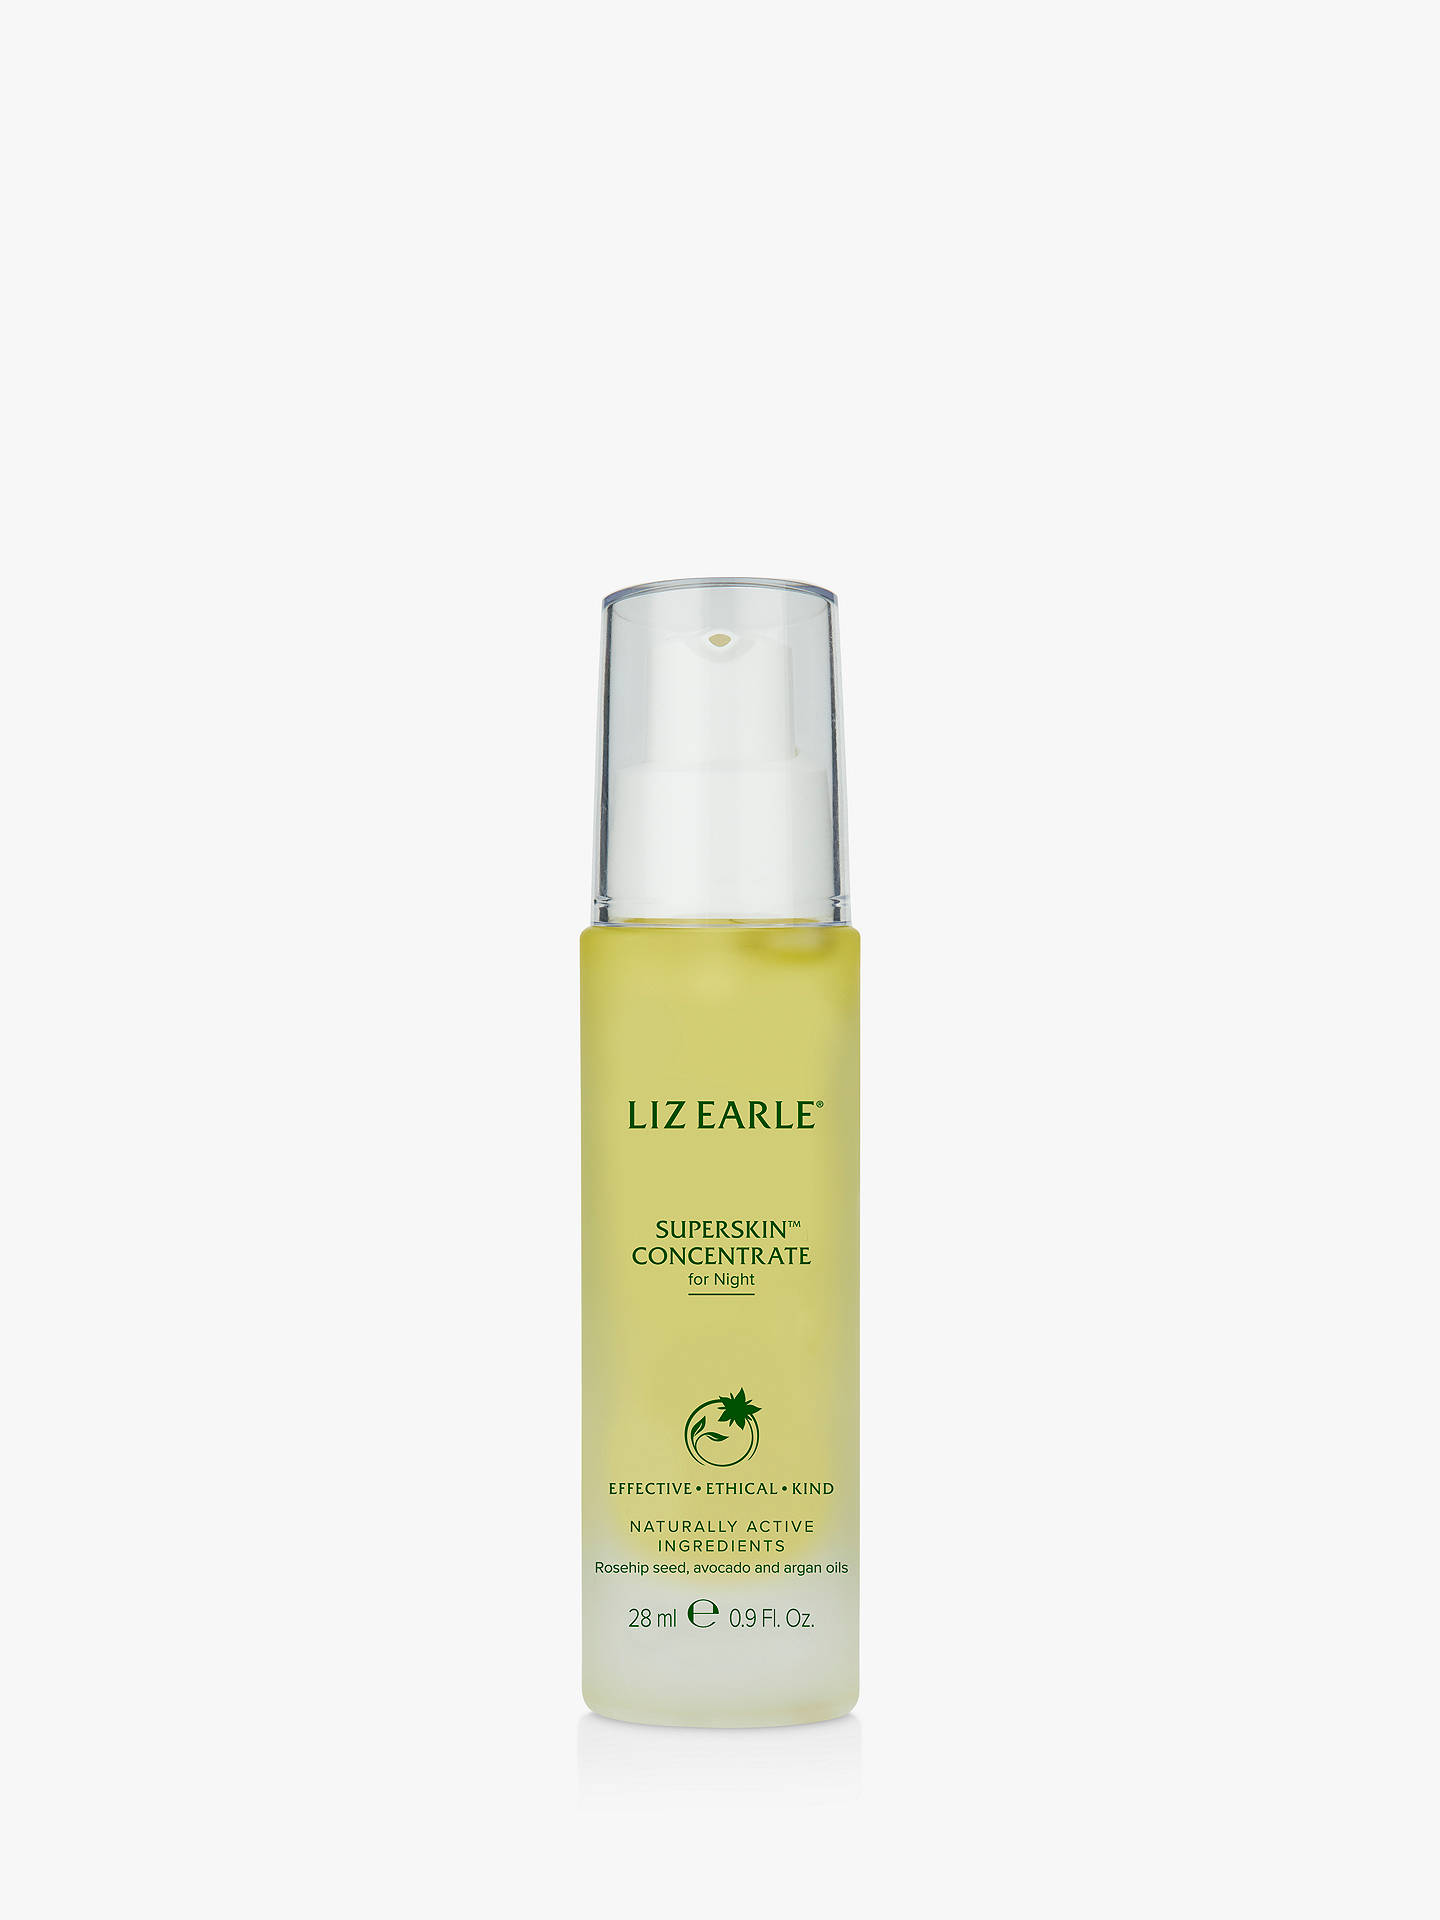 Liz Earle Superskin™ Concentrate For Night Moisturiser, 28ml by Liz Earle Superskin